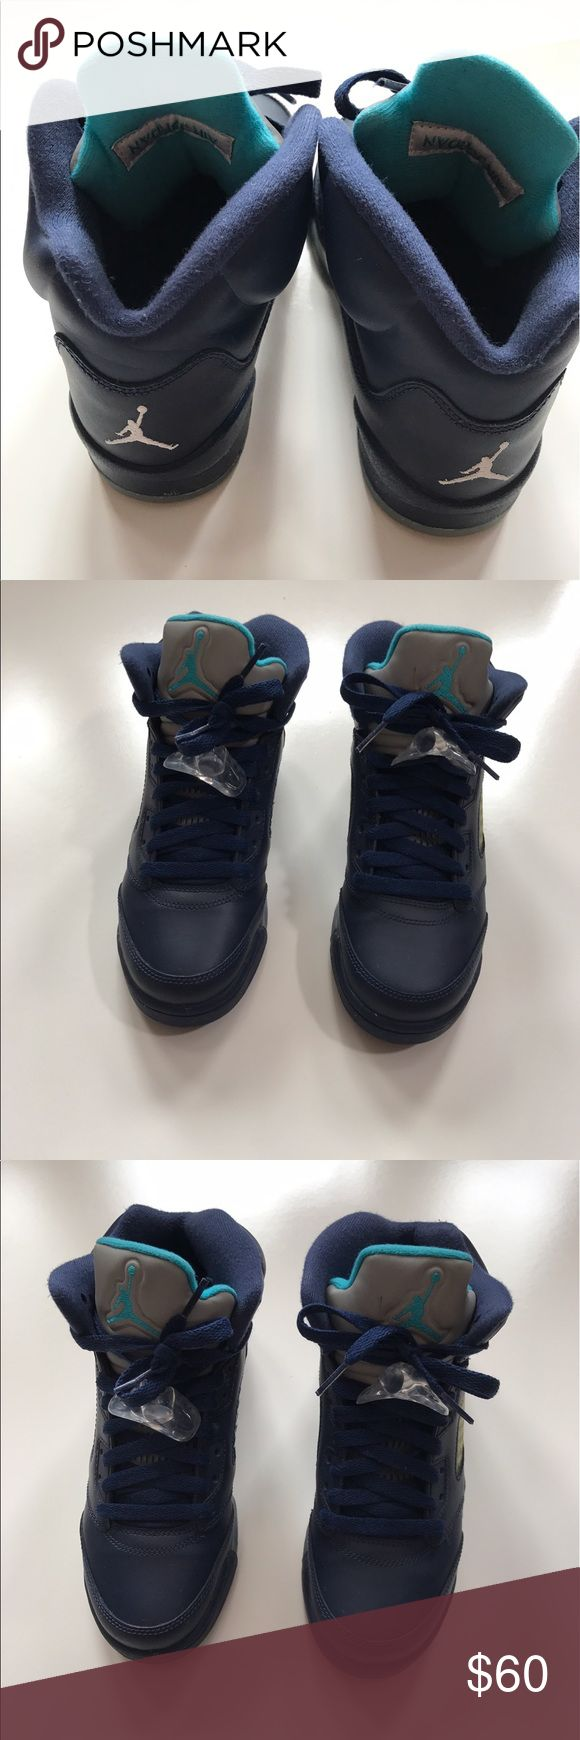 Kids Jordan's Navy blue like new excellent condition. No stains, no wrinkles or creases in toe area. Air Jordan Shoes Sneakers